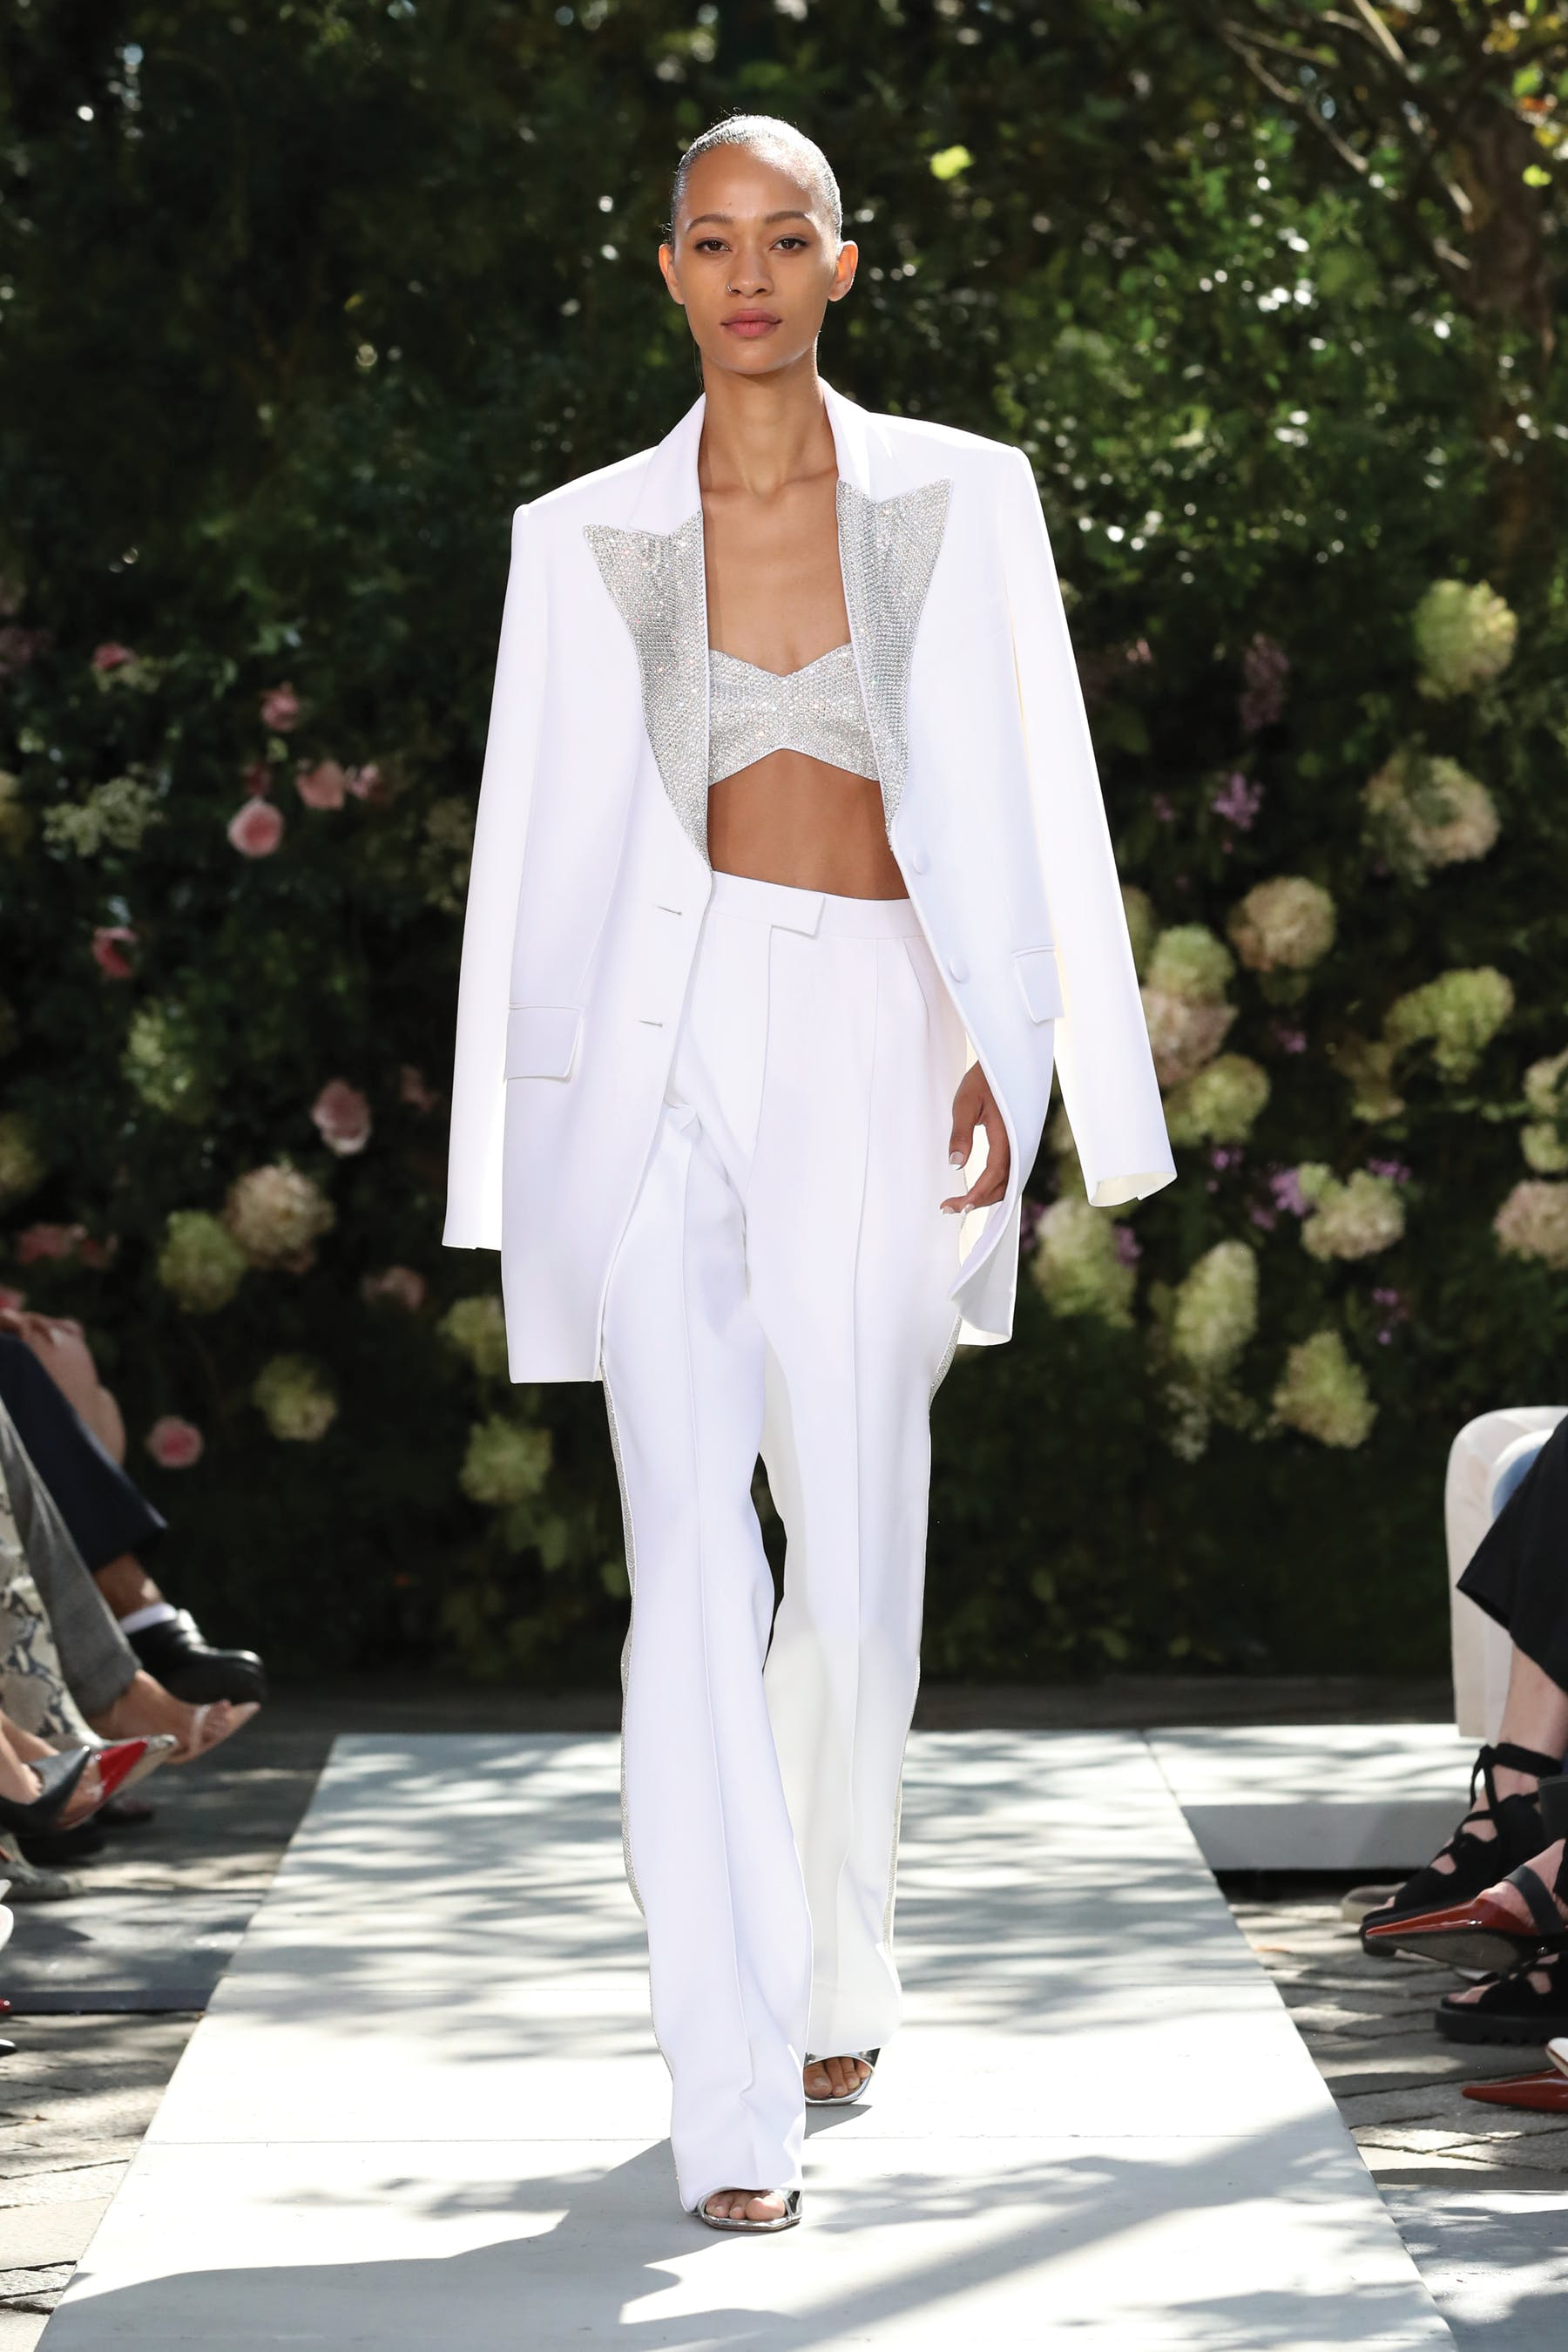 ss22-look-59